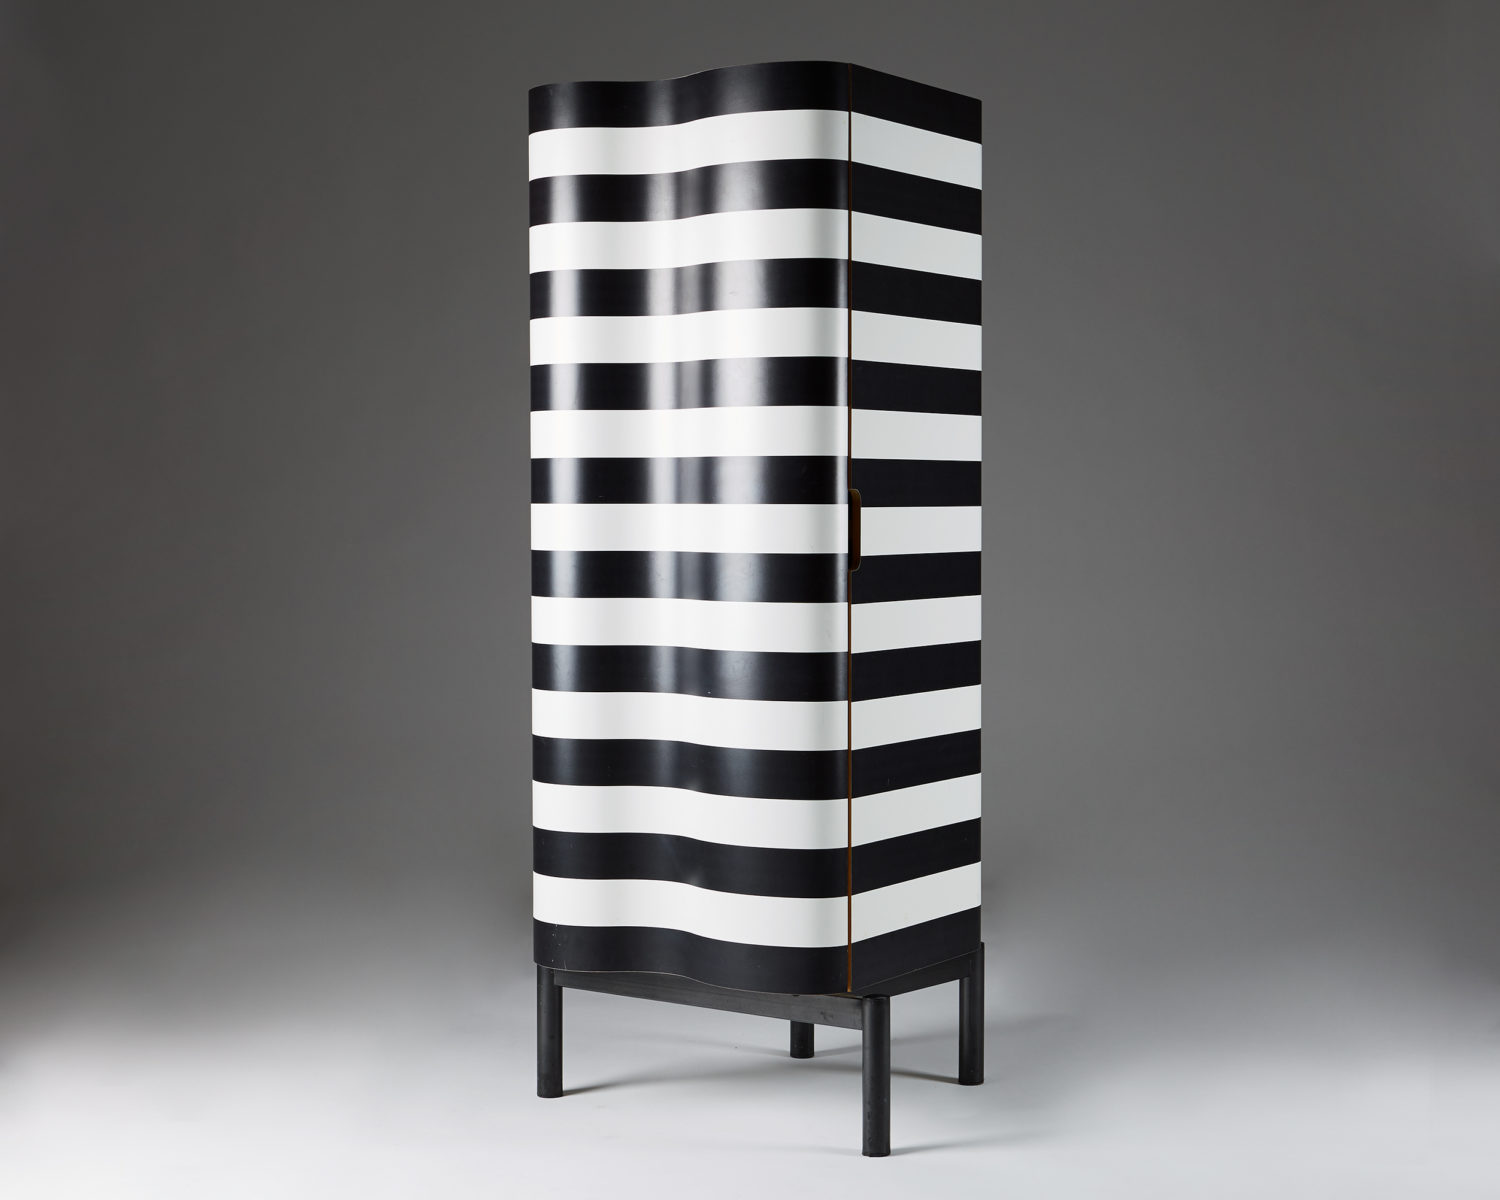 Cupboard Ono designed by Love Arbén for Lammhults, Sweden. 1992.